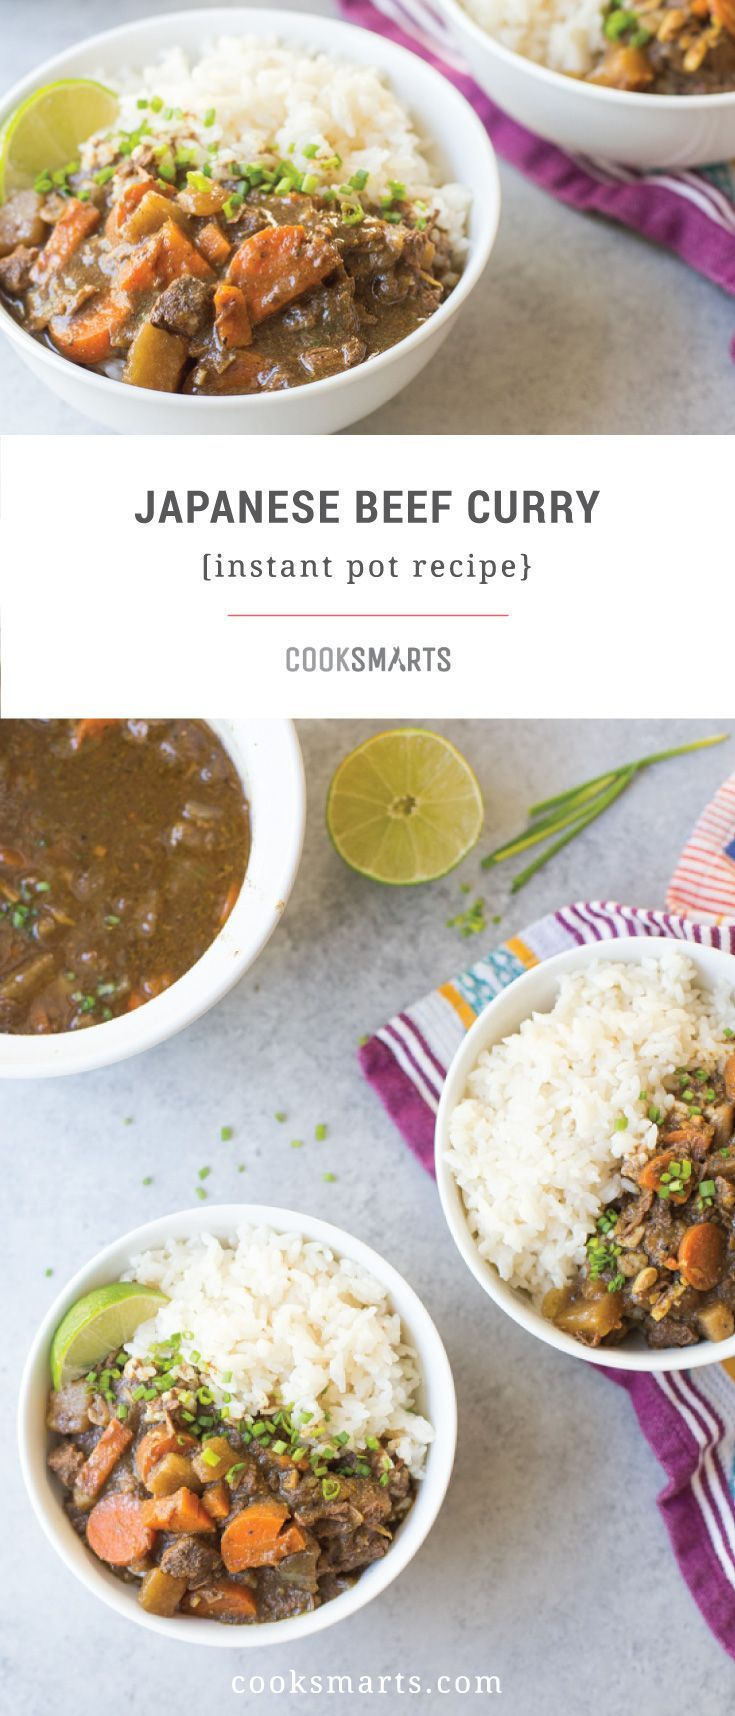 Instant Pot Japanese Curry Recipe Cook Smarts Recipe Instant Pot Recipes Curry Recipes Japanese Curry